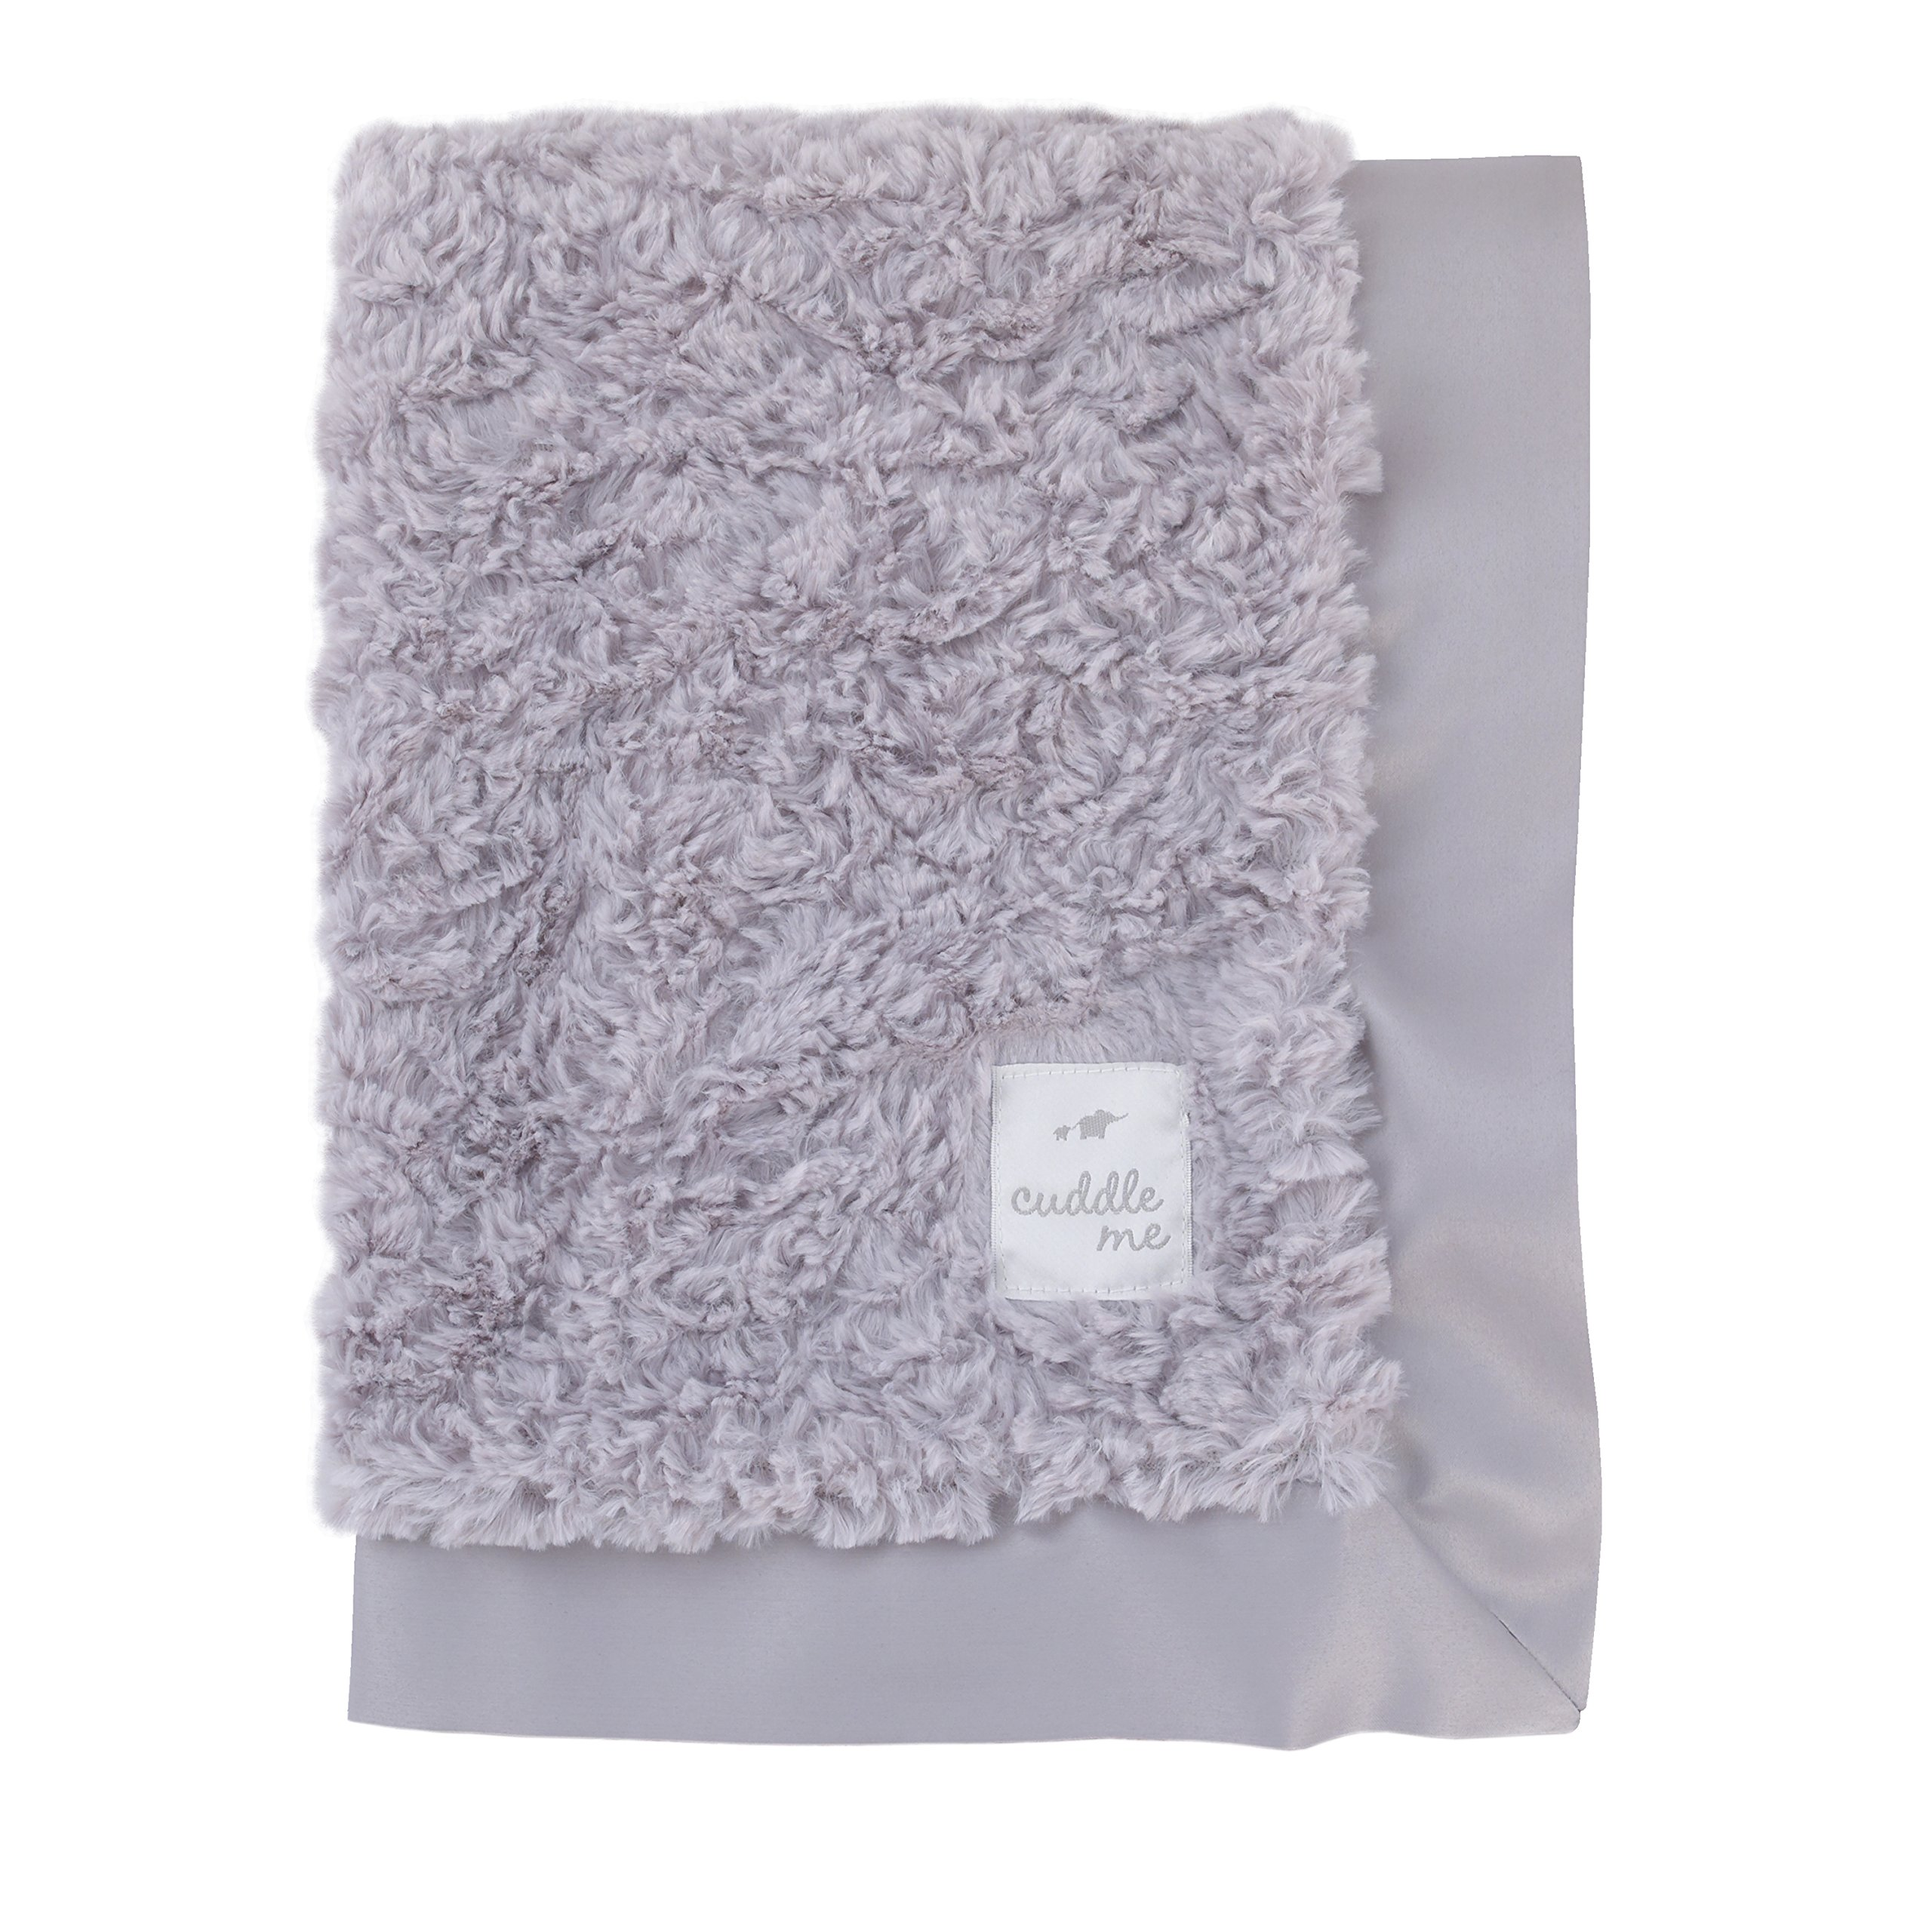 Cuddle Me Luxury Plush Blanket with Matte Satin Border, Grey by Cuddle Me